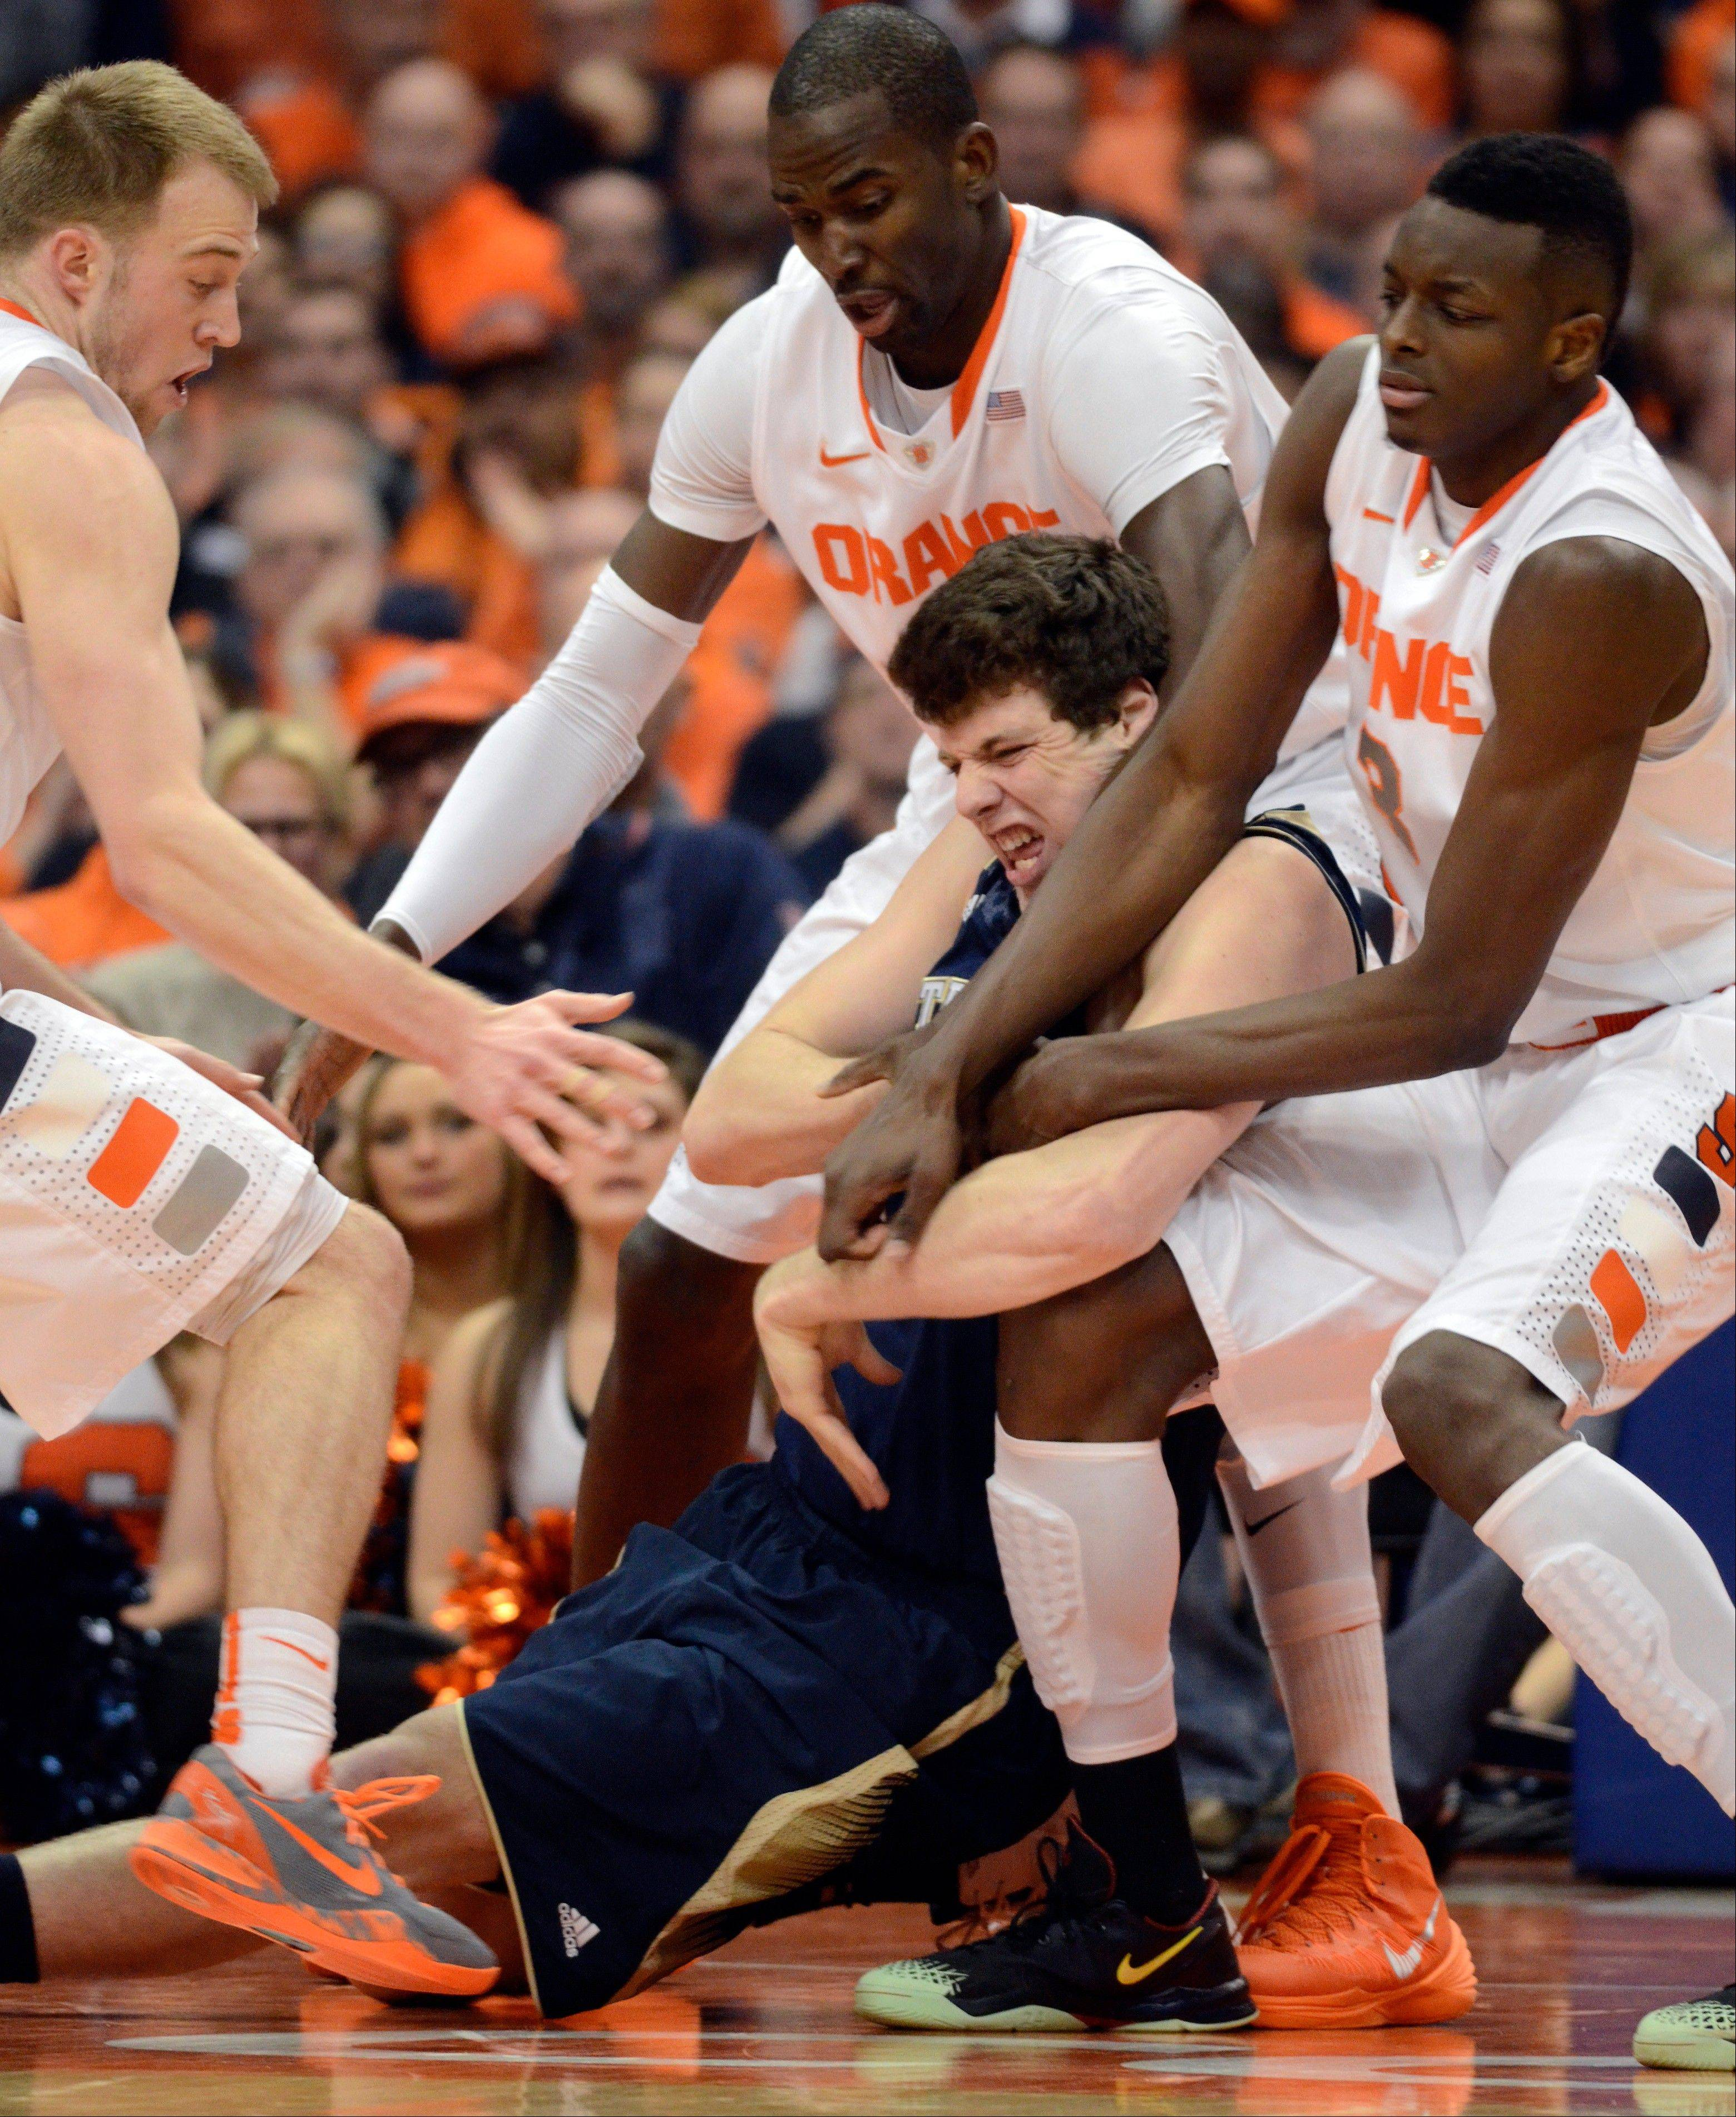 Notre Dame�s Tom Knight battles with Syracuse�s, from left, Trevor Cooney, Baye Moussa Kieta and Jerami Grant for a loose ball during the second half of an NCAA college basketball game in Syracuse, N.Y., Monday, Feb. 3, 2014. Syracuse won 61-55.